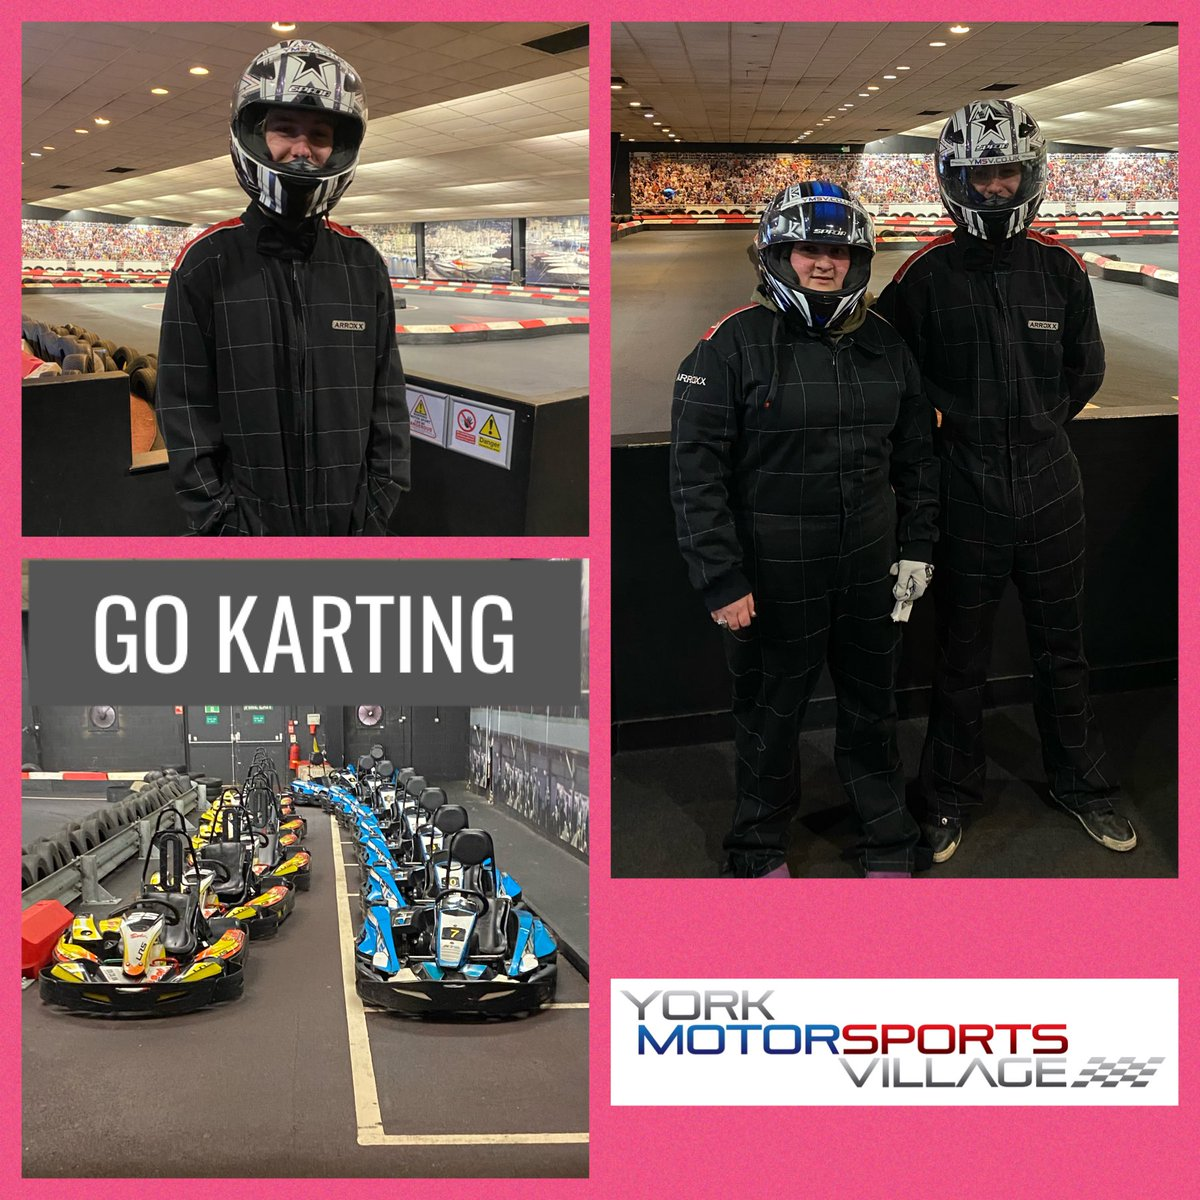 Today residents from Malton Ryedale YMCA went Go Karting. It was very competitive but a great challenge! #ryedaleymca #gokarting #dayout #youngpeople @YMCAEng_Wales @Foundation___pic.twitter.com/xWK6OynZu0